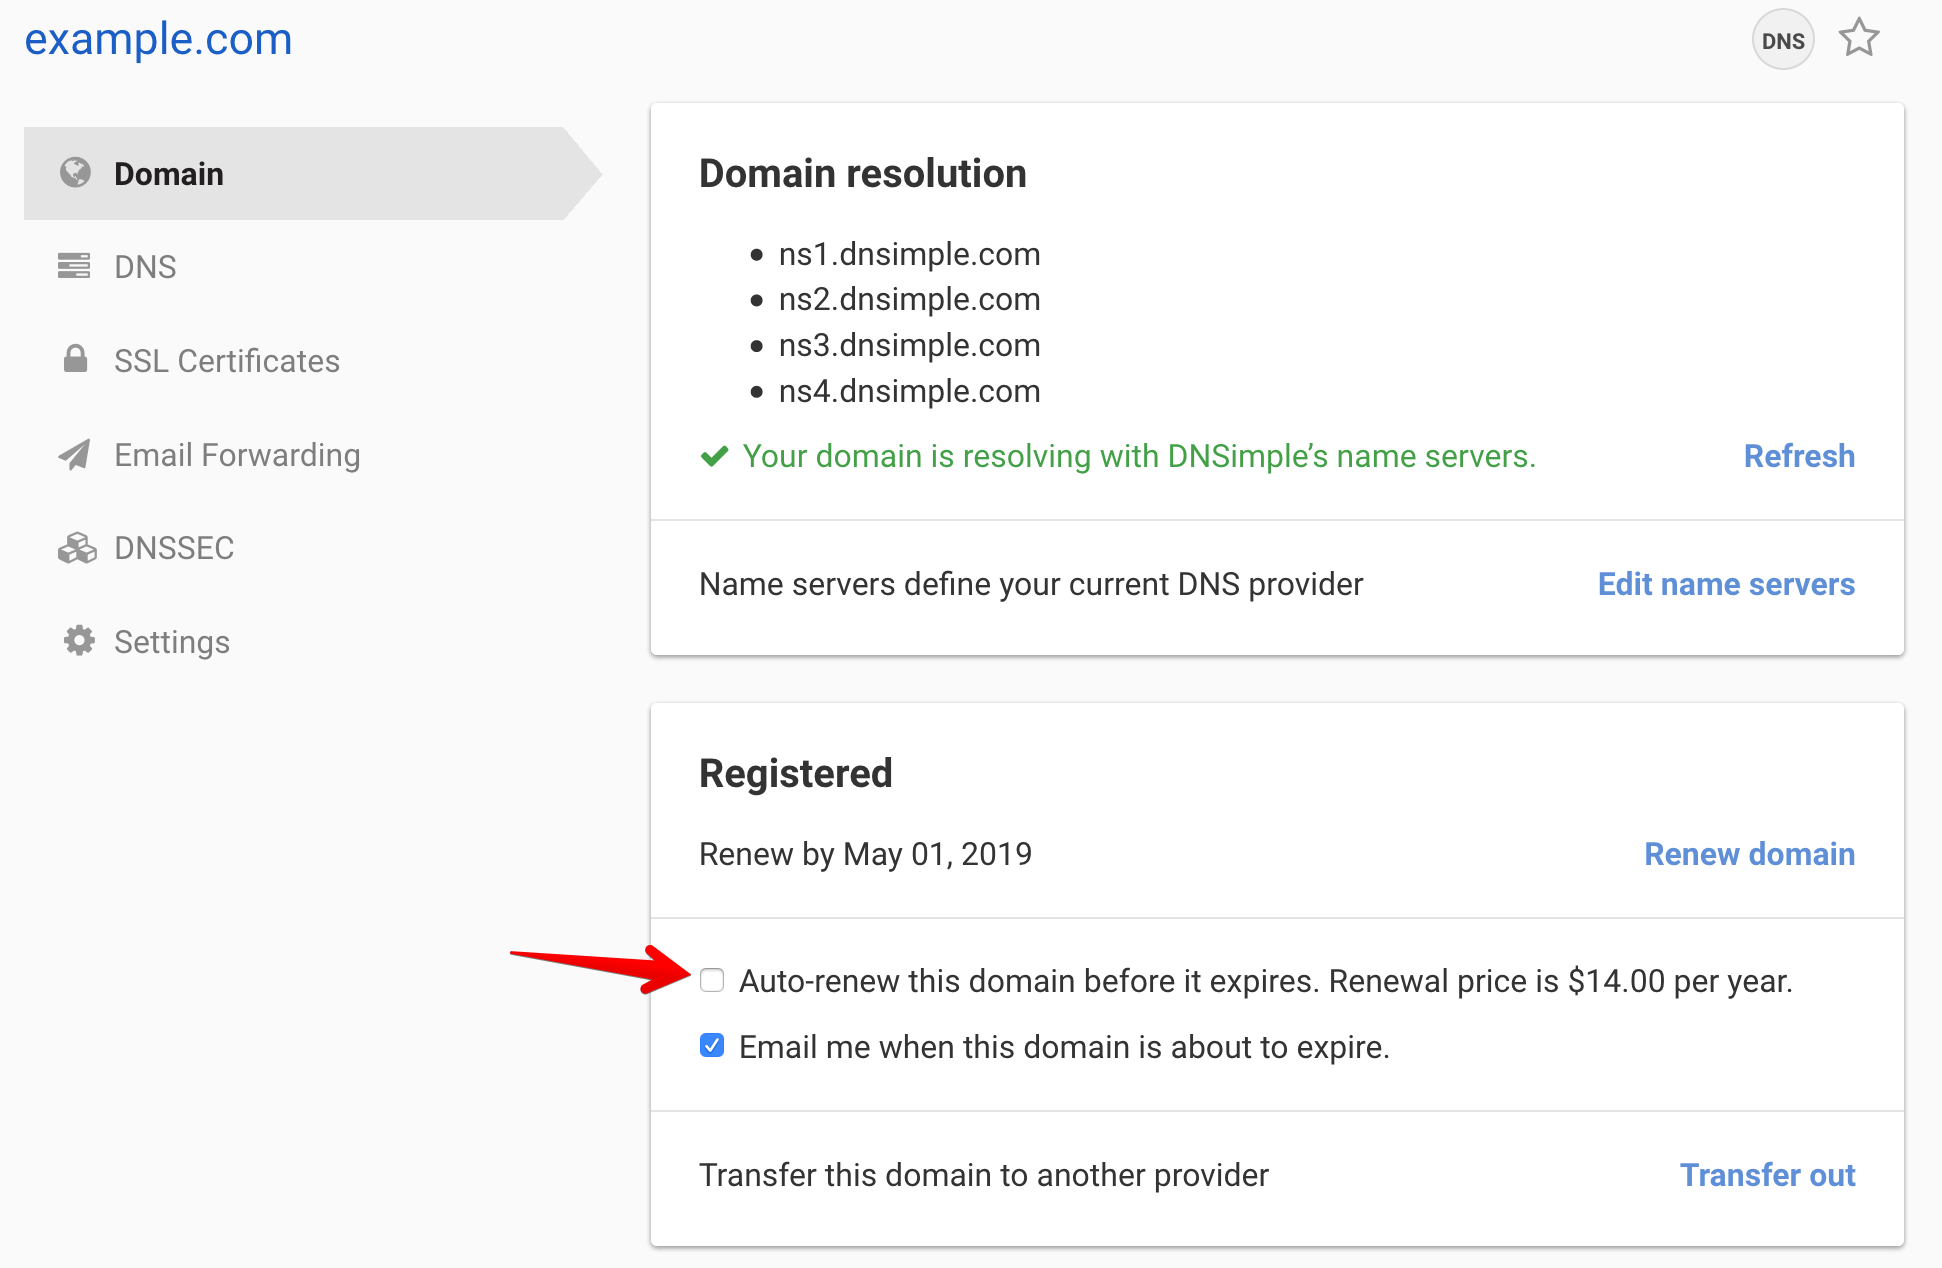 Auto-renewal checkbox